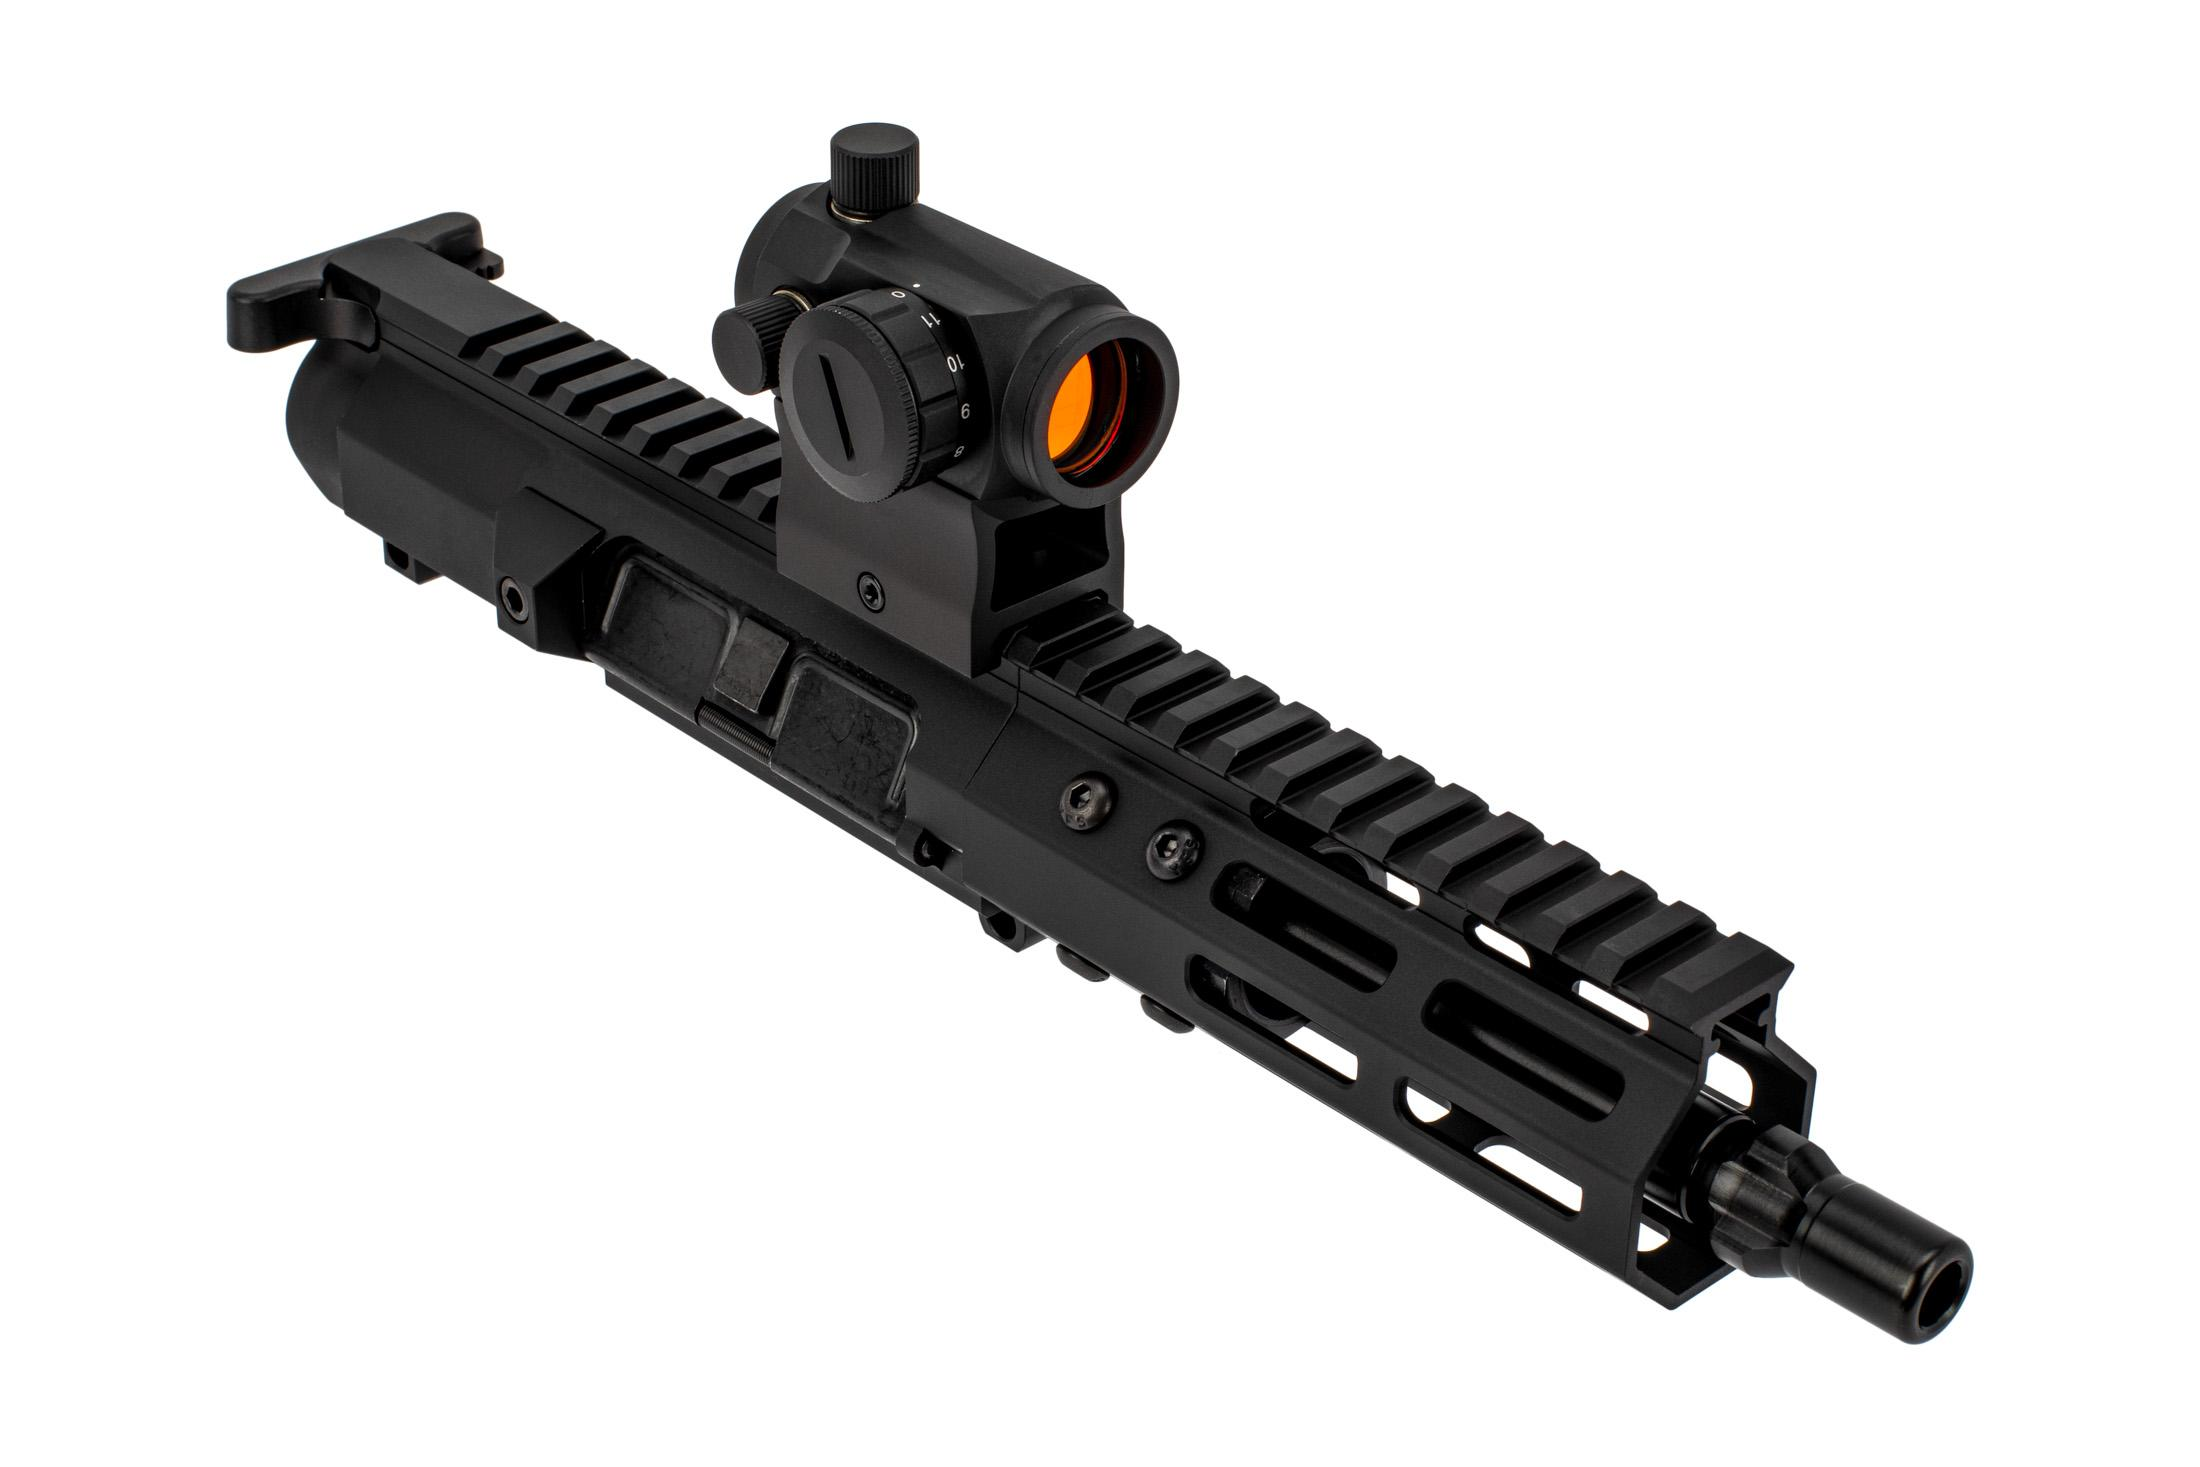 Buy 7 FM Products Glock Style PCC 9mm Upper Get A Free Primary Arms Red Dot